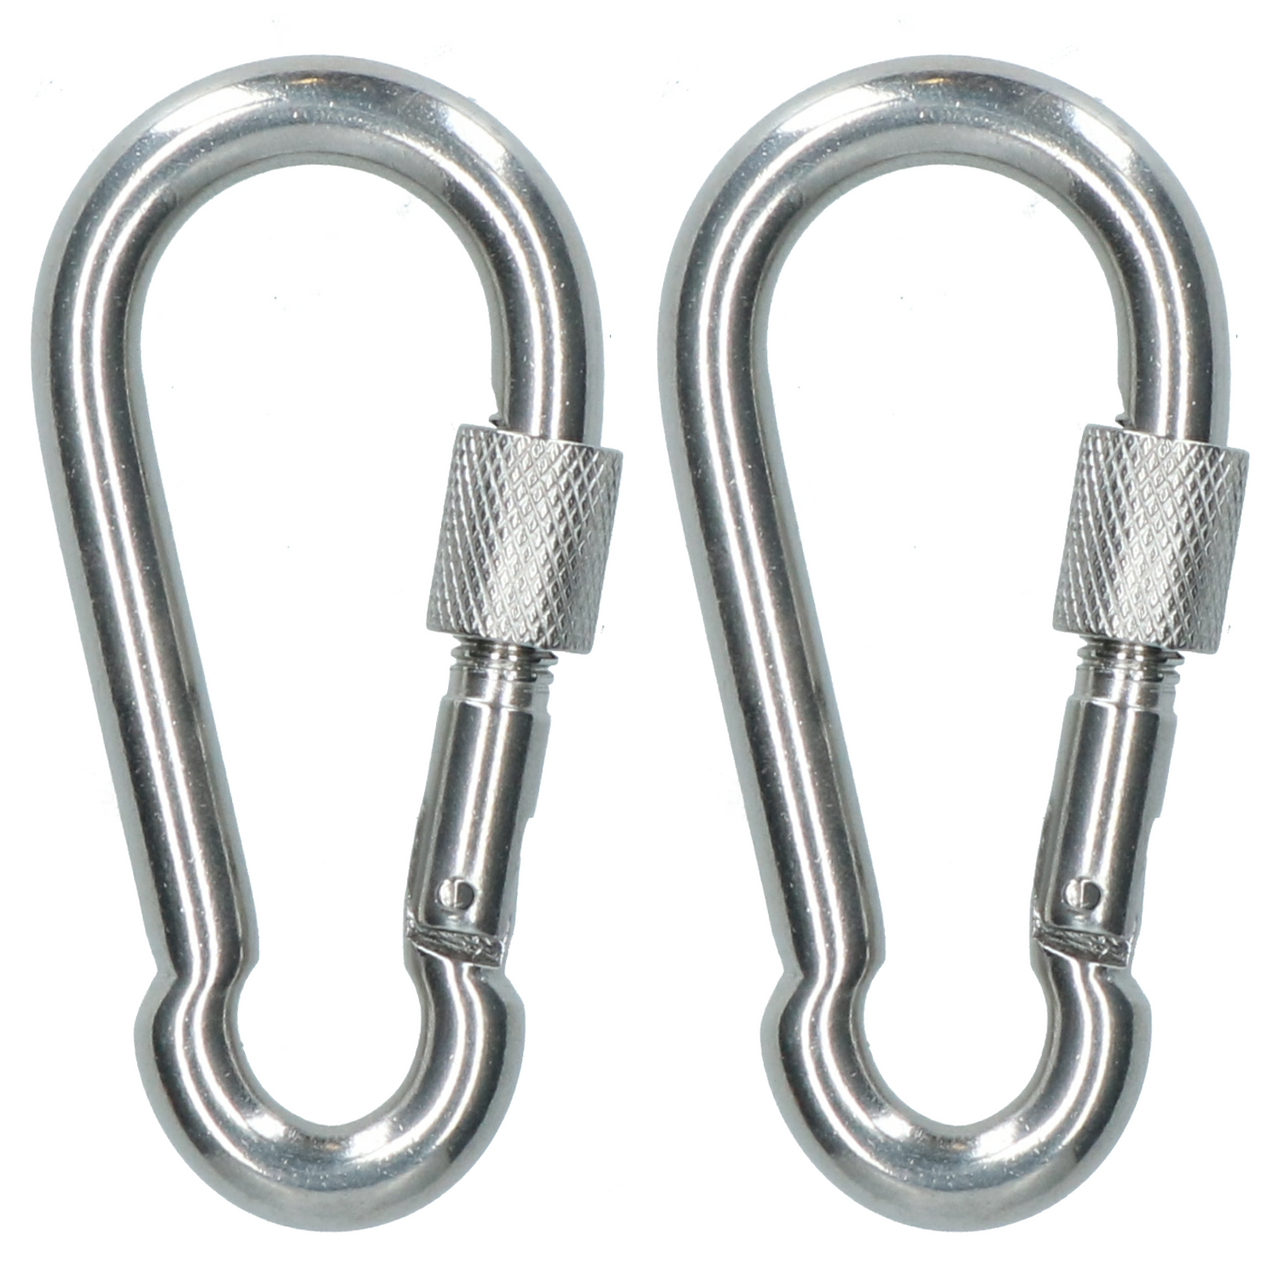 2 x Carabina Carbine Hook with Screw Gate 8mm MARINE GRADE Stainless Steel DK75